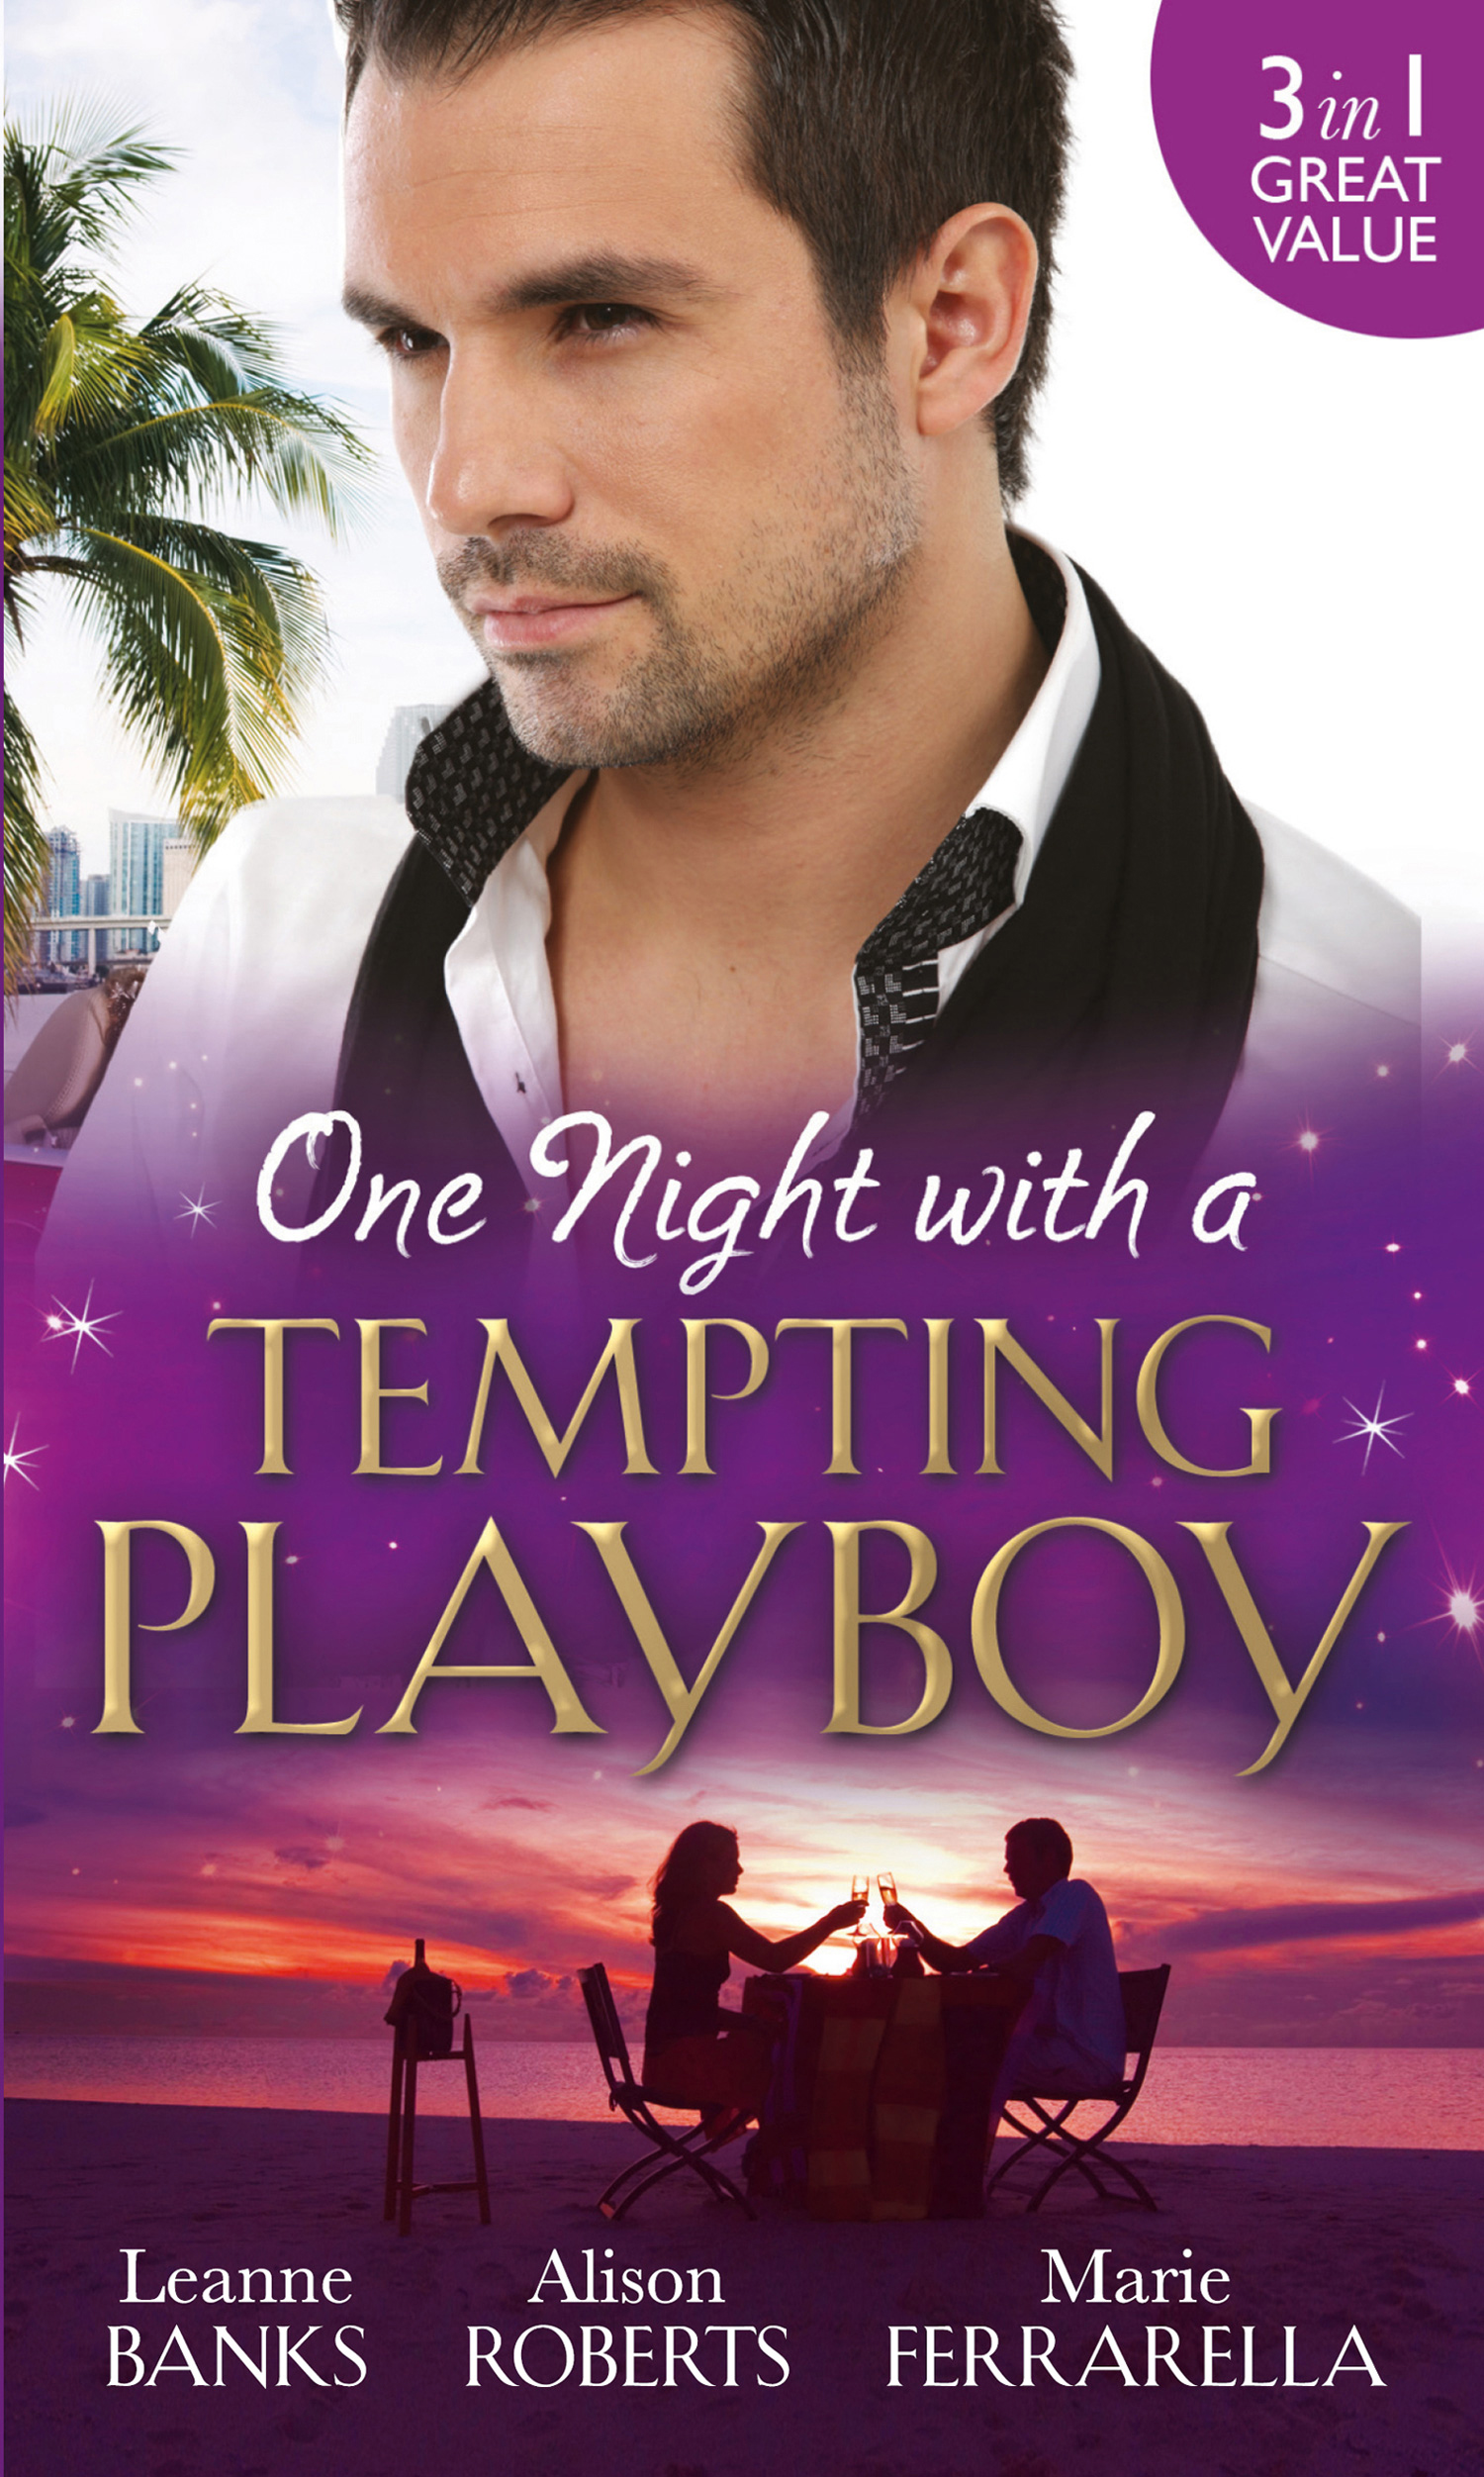 One Night with a Tempting Playboy